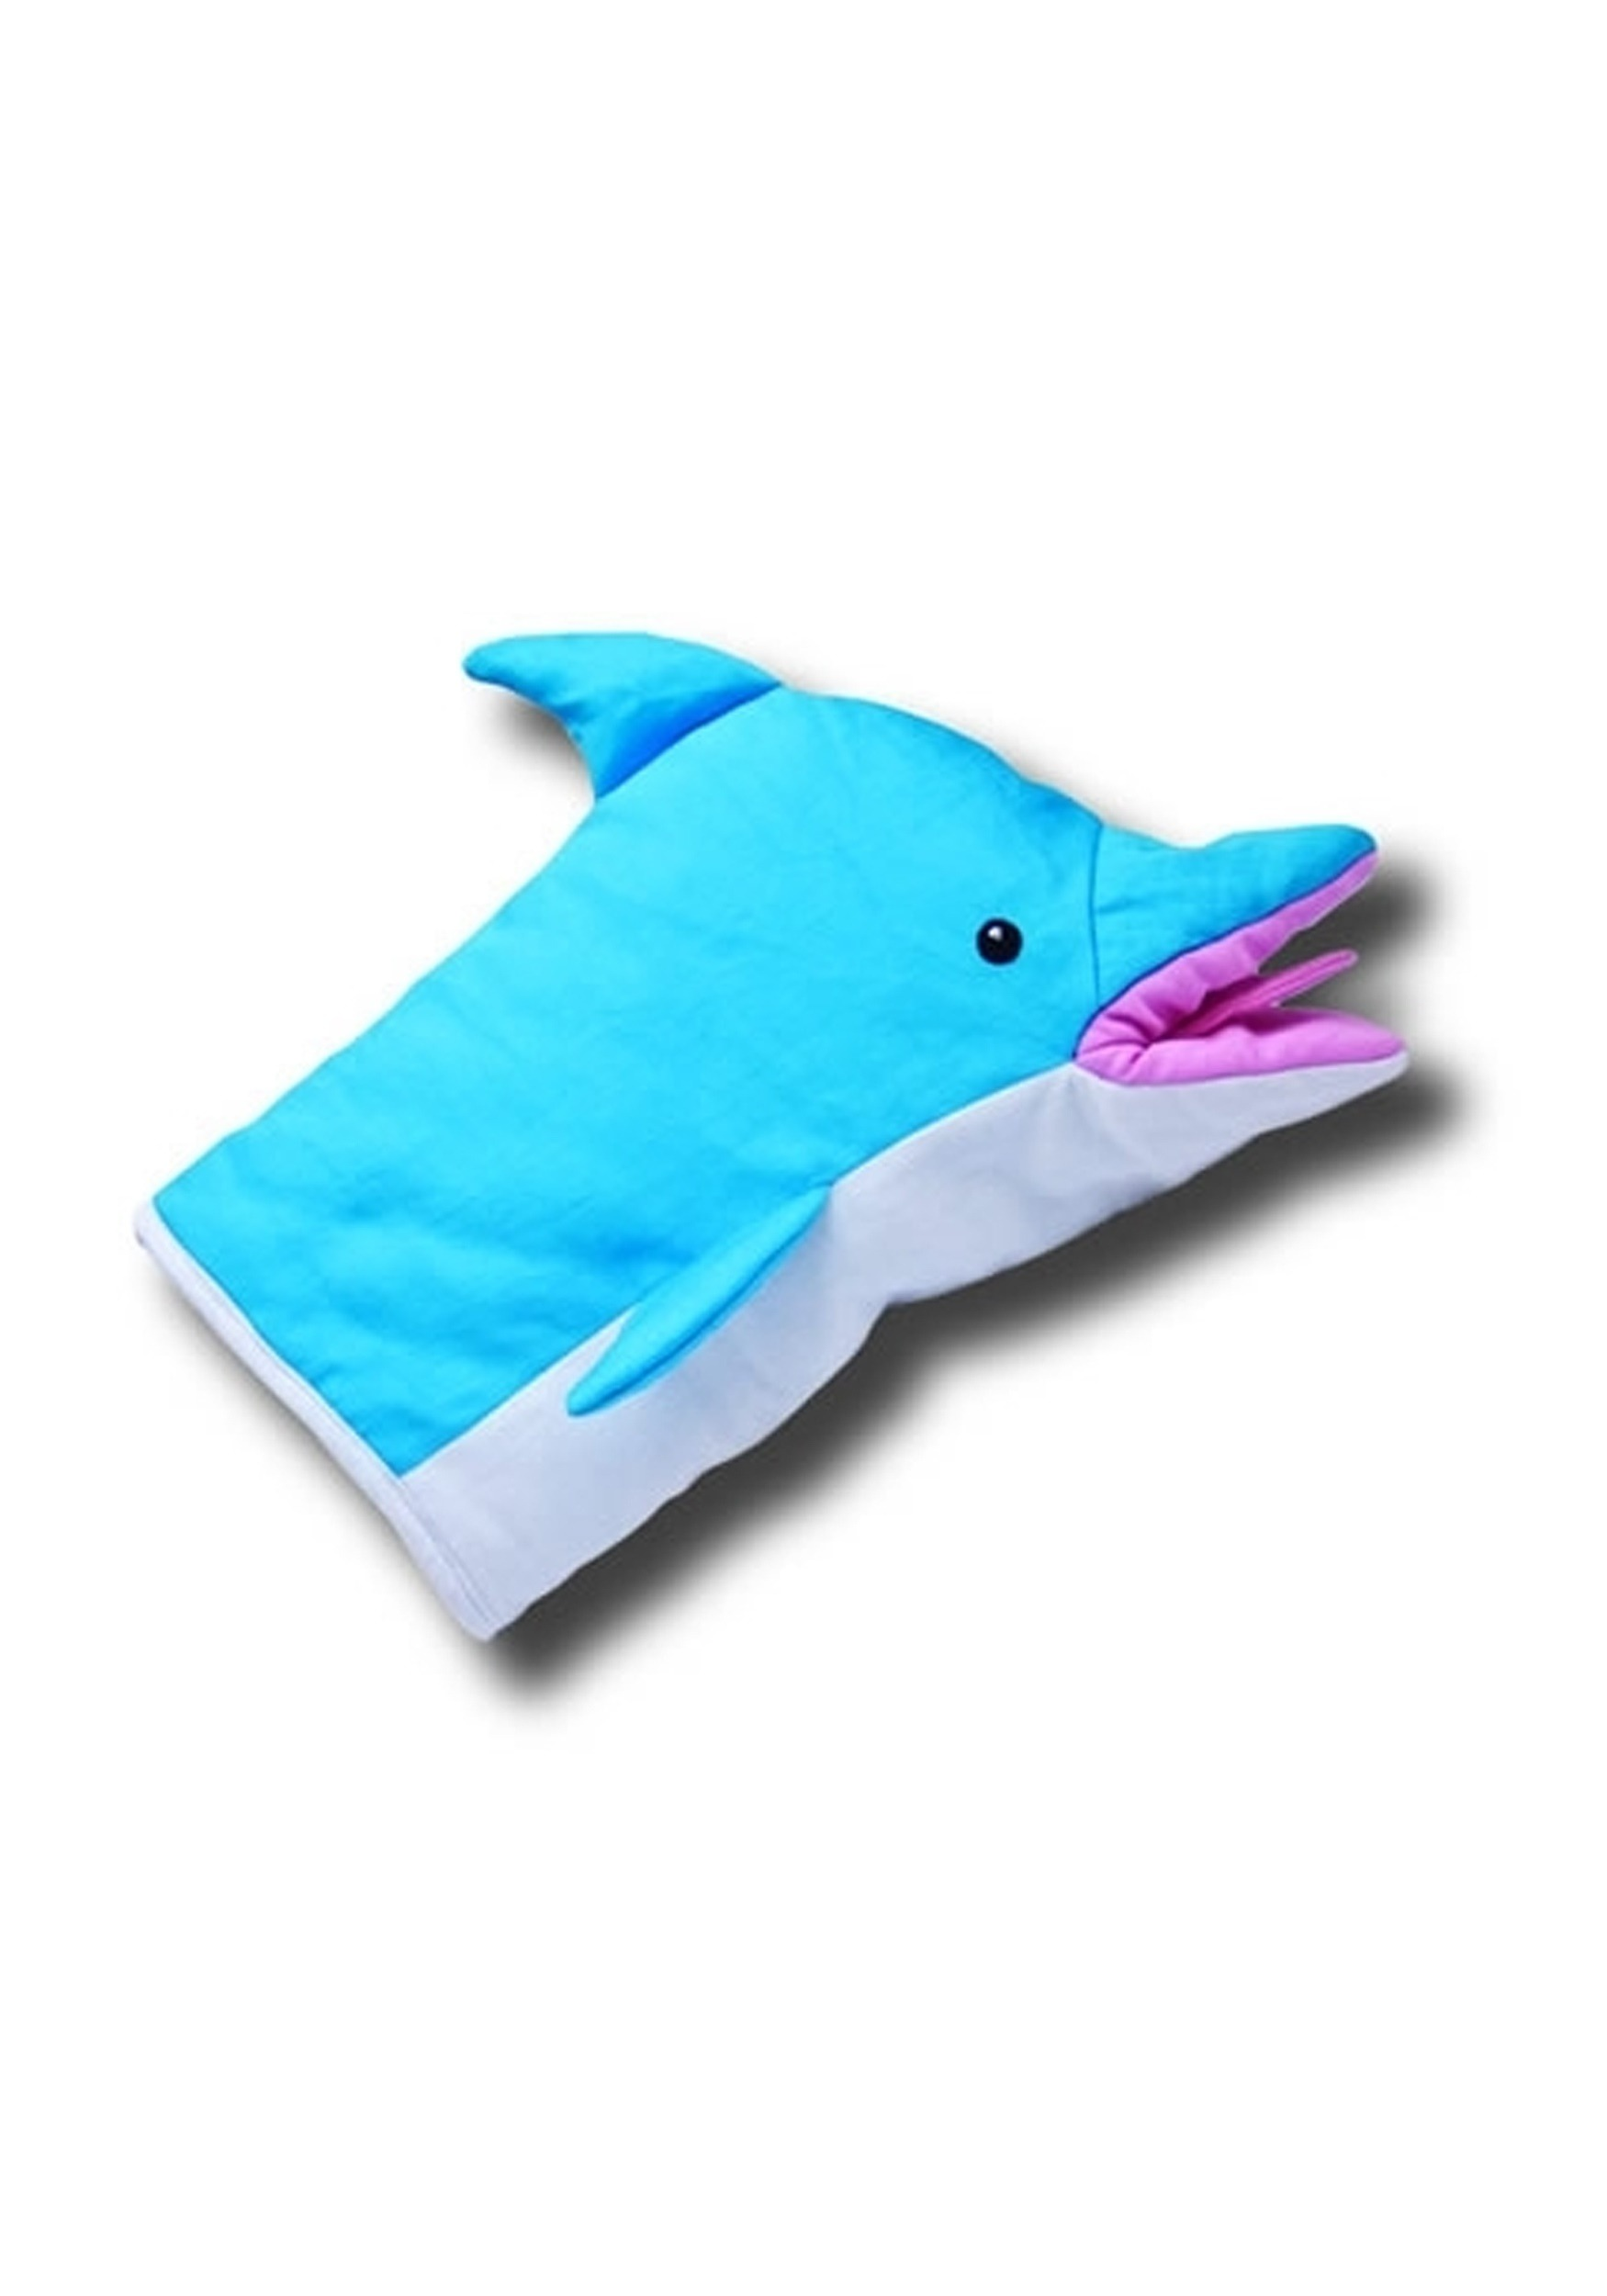 INOpets.com Anything for Pets Parents & Their Pets Archer Pam's Dolphin Oven Mitt